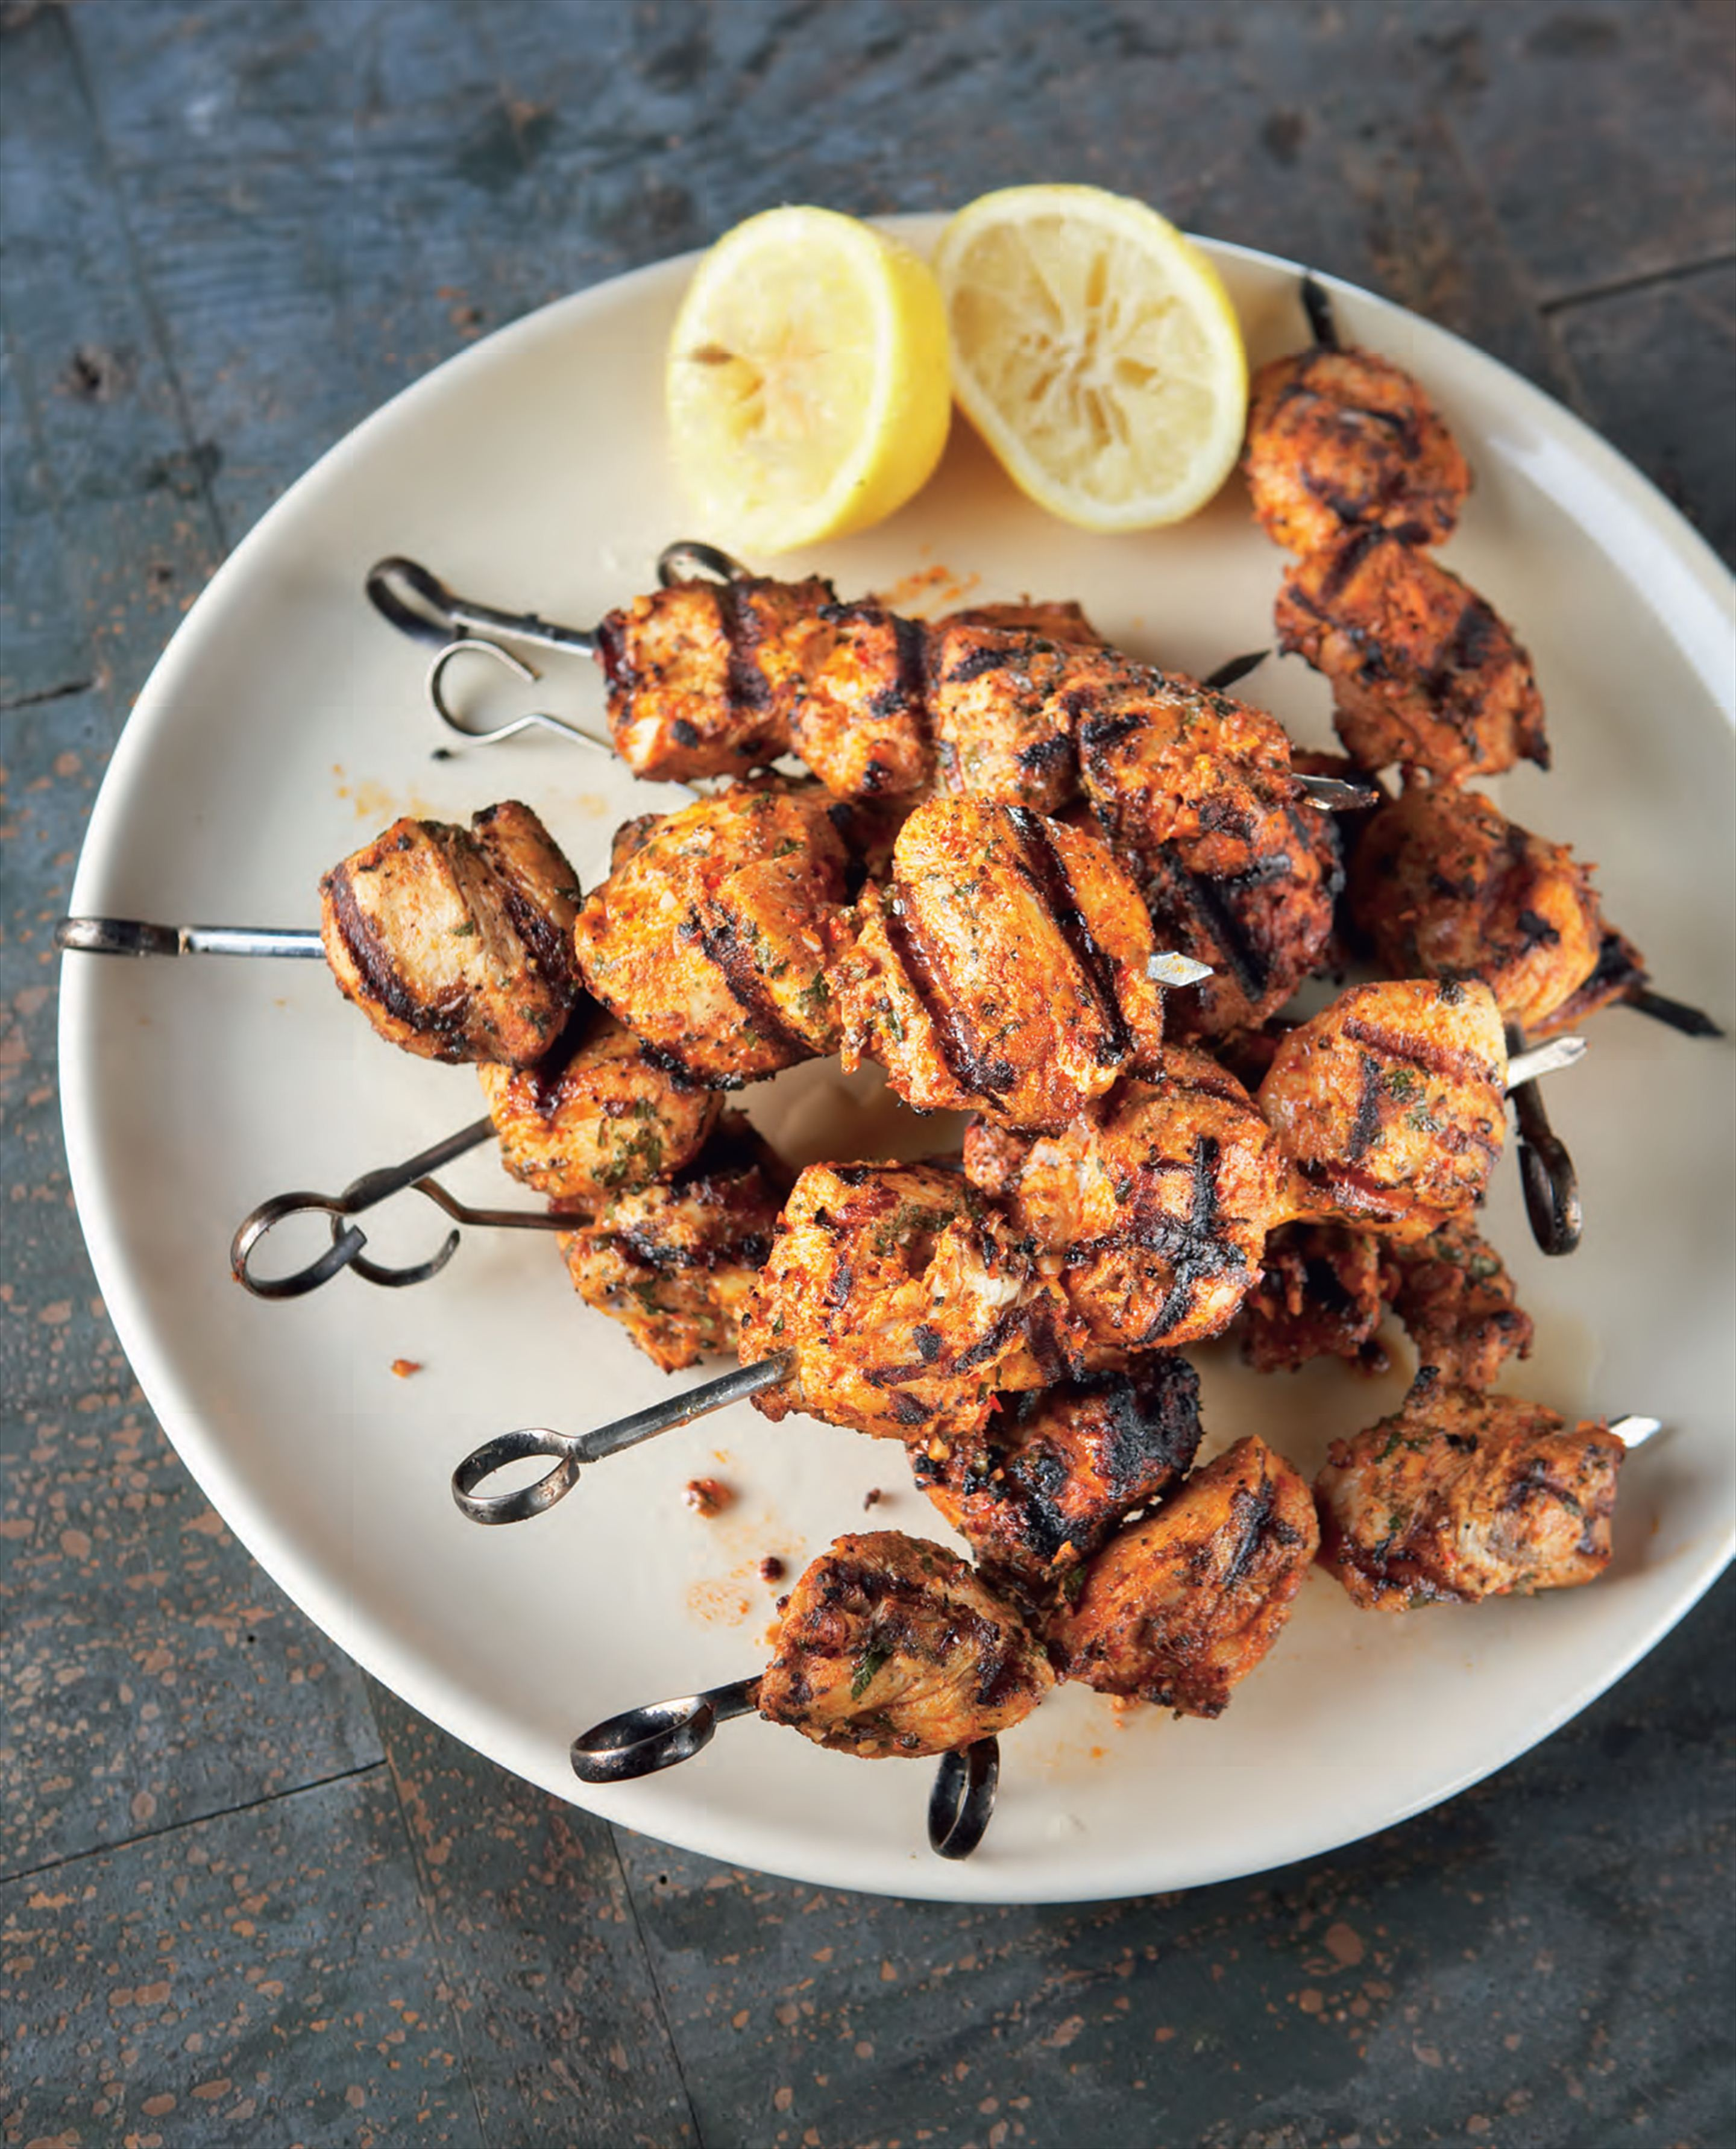 Portuguese-style barbecued chicken skewers